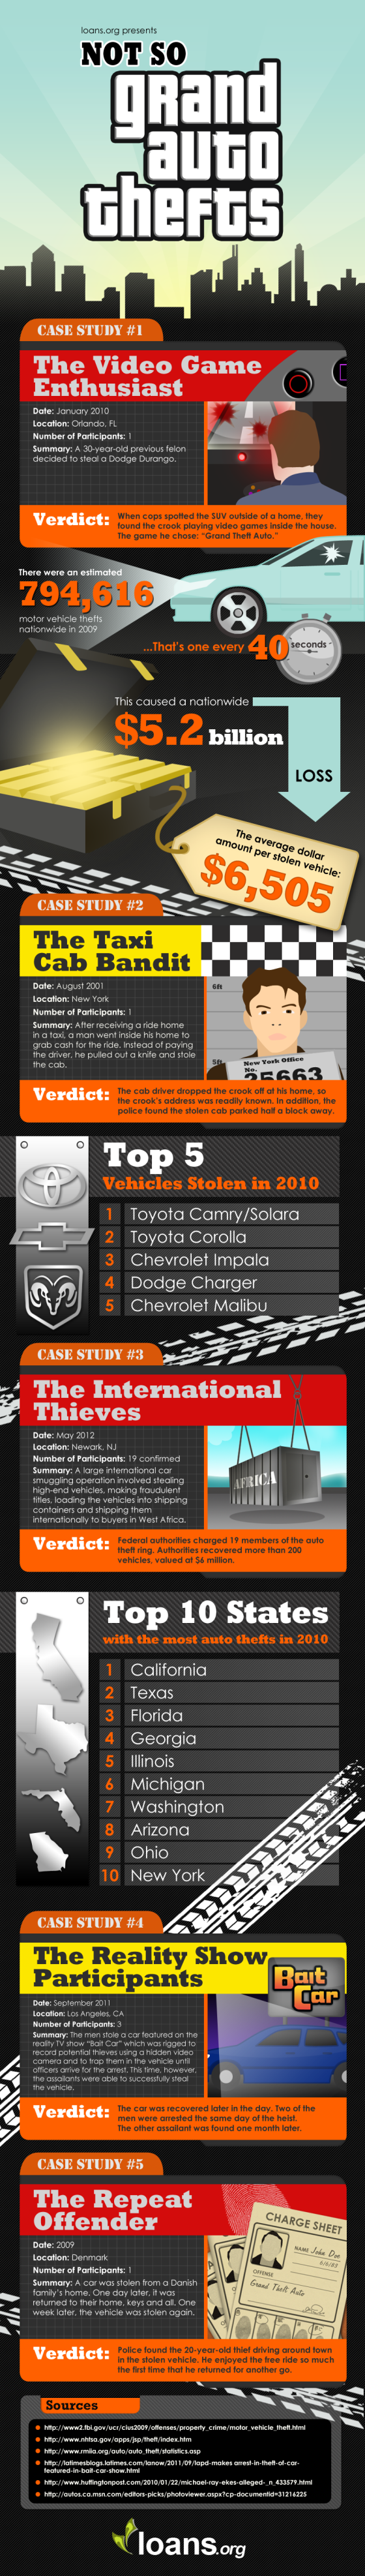 Not so grand theft auto infographic